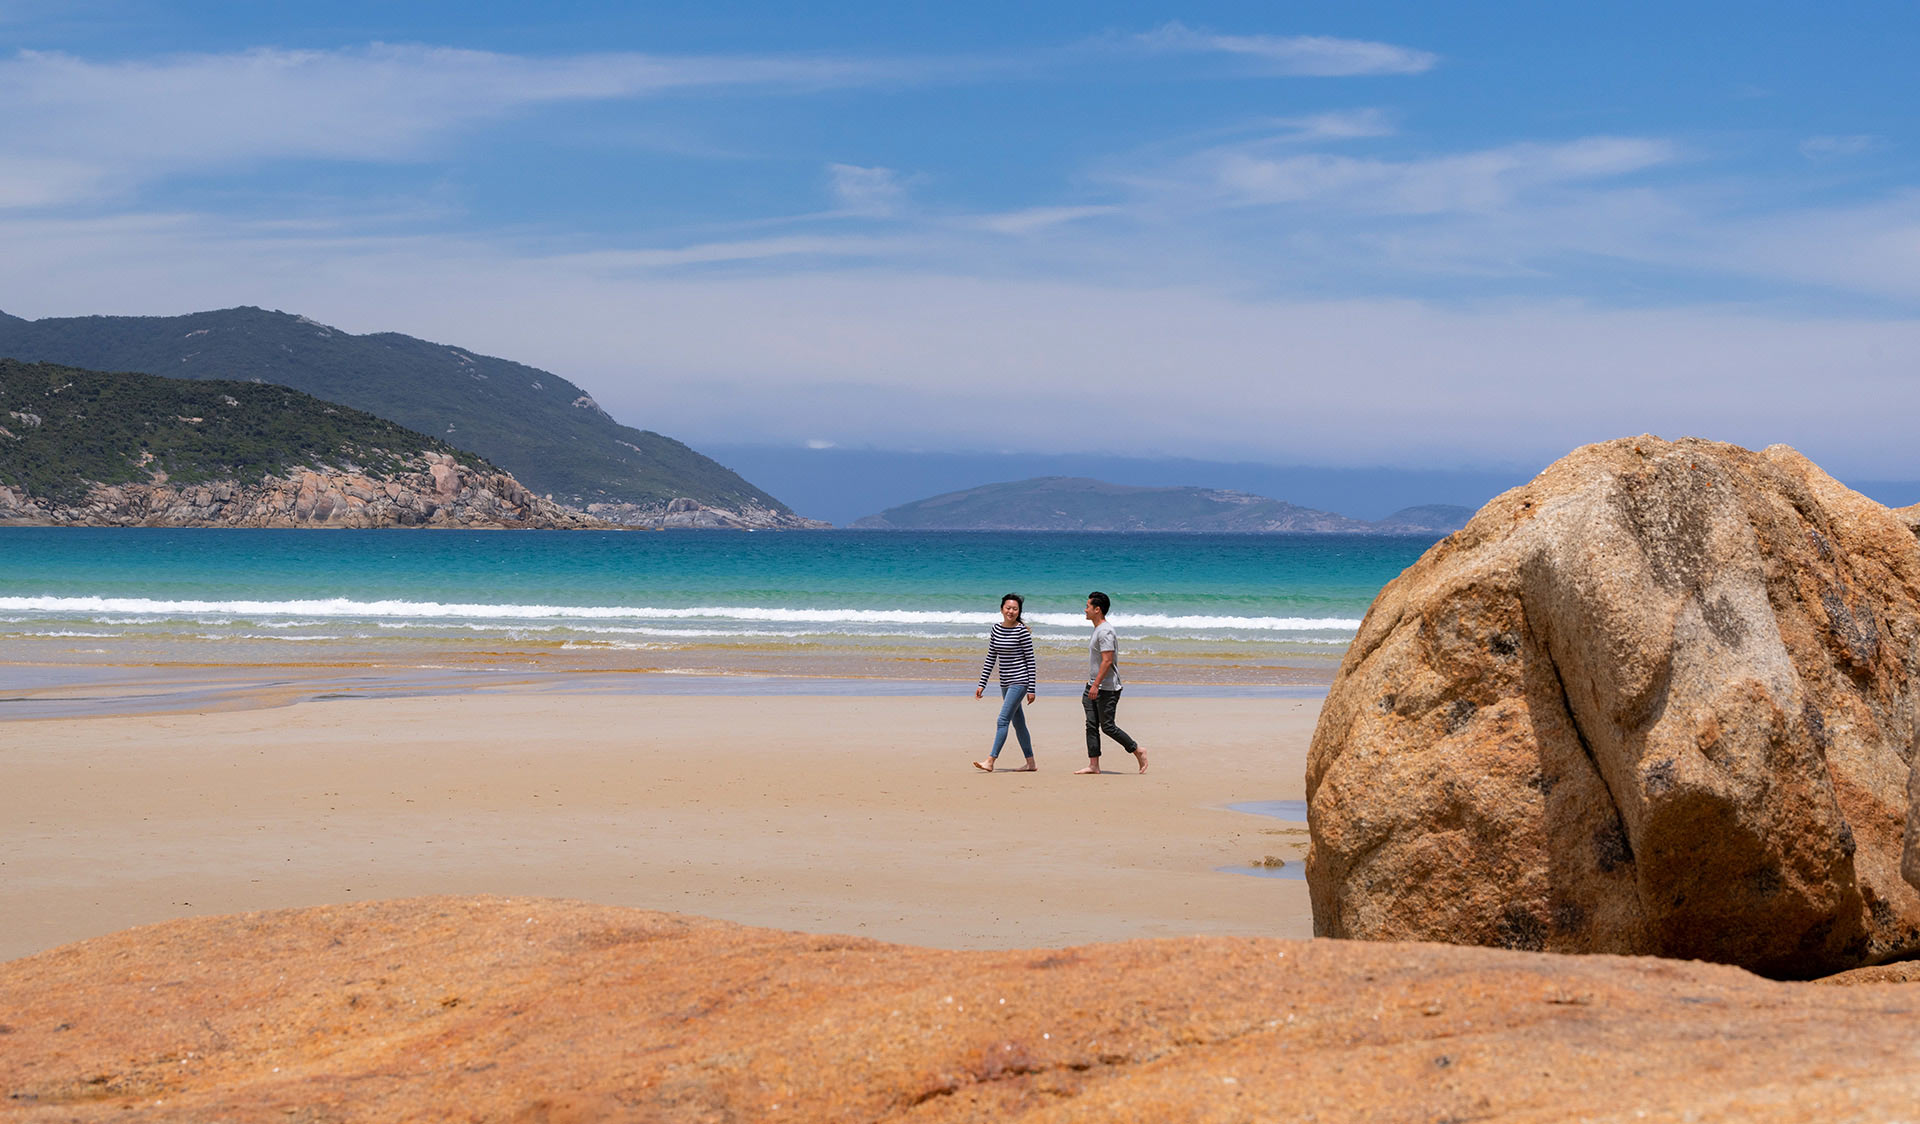 Two people walk along a pristine beach on Wilsons Promontory.